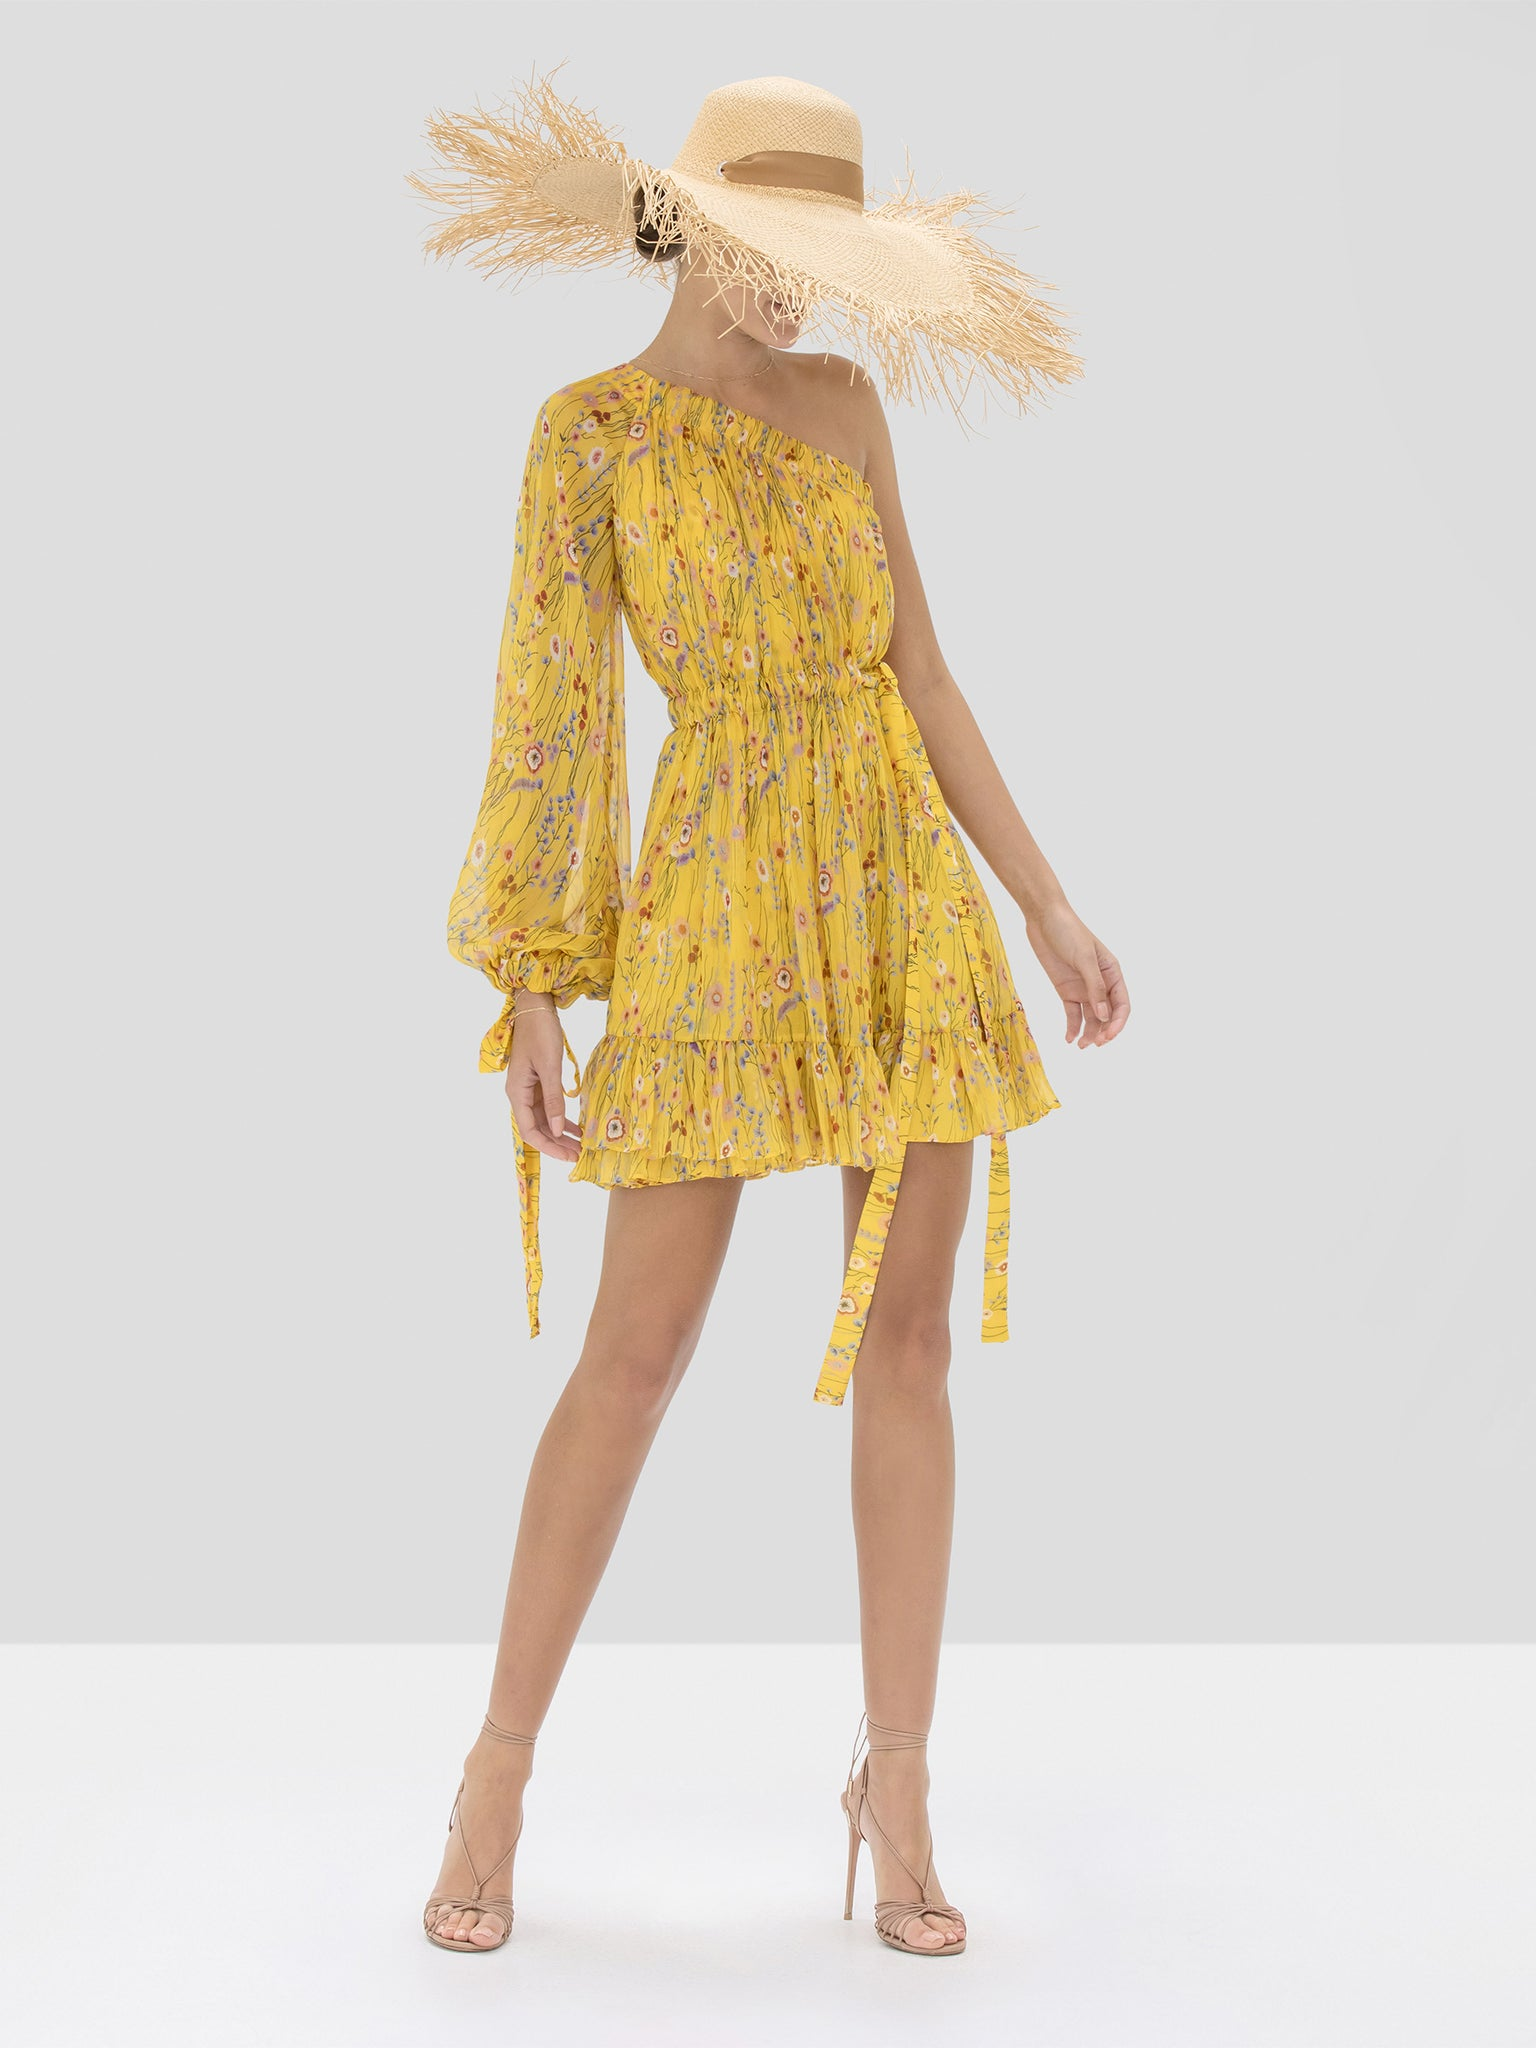 Alexis Edyta Dress in Sunrise Bouquet from Spring Summer 2020